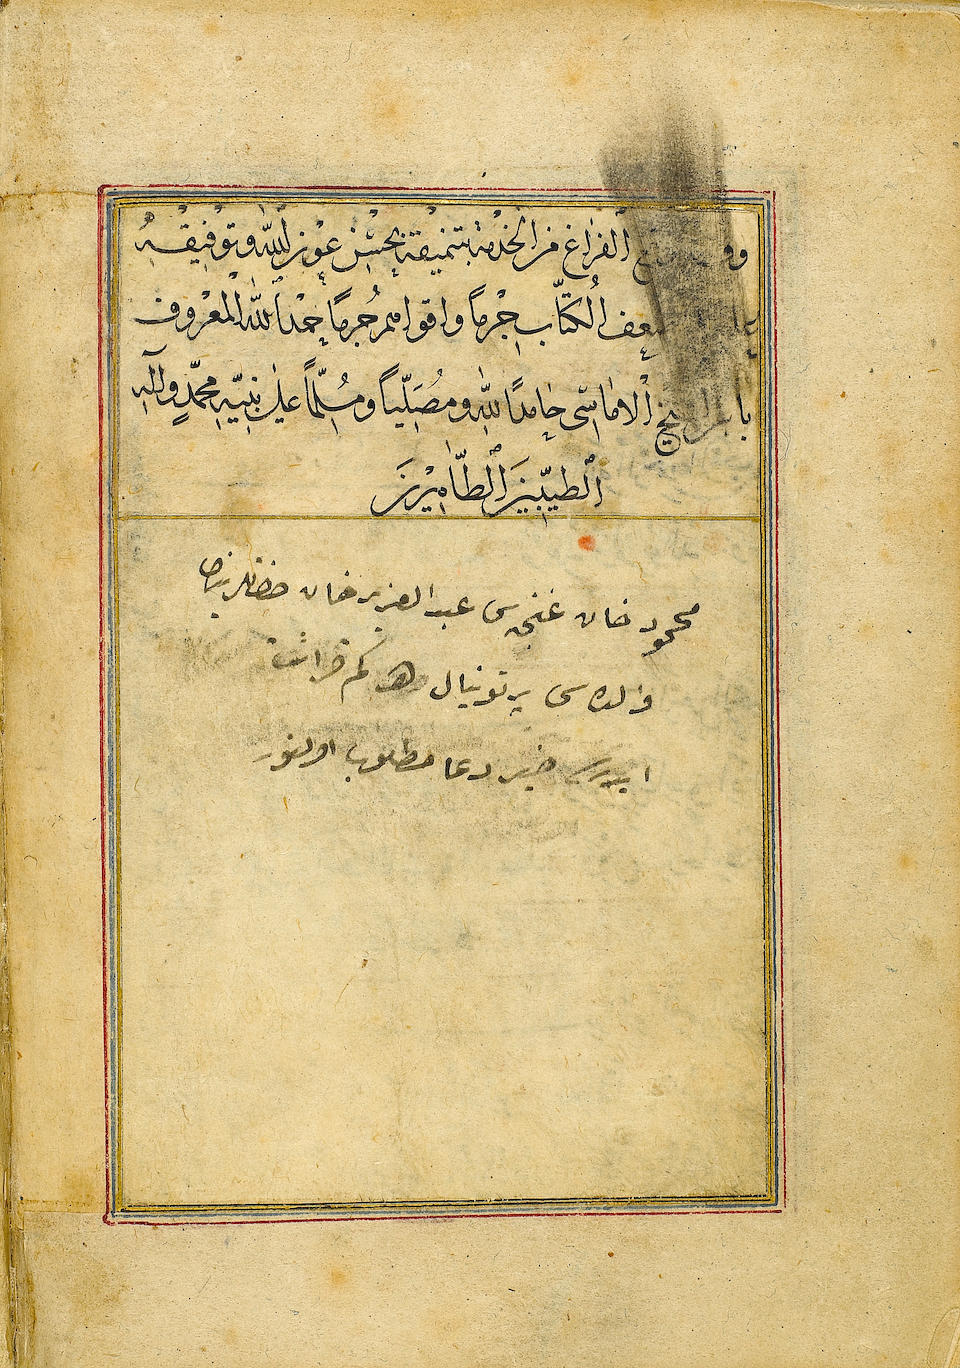 An illuminated Qur'an attributed to Shaykh Hamdullah (b. circa 1436-37, d. 1520), known as Ibn al-Shaykh al-Amasi Ottoman Turkey, probably Constantinople, late 15th Century